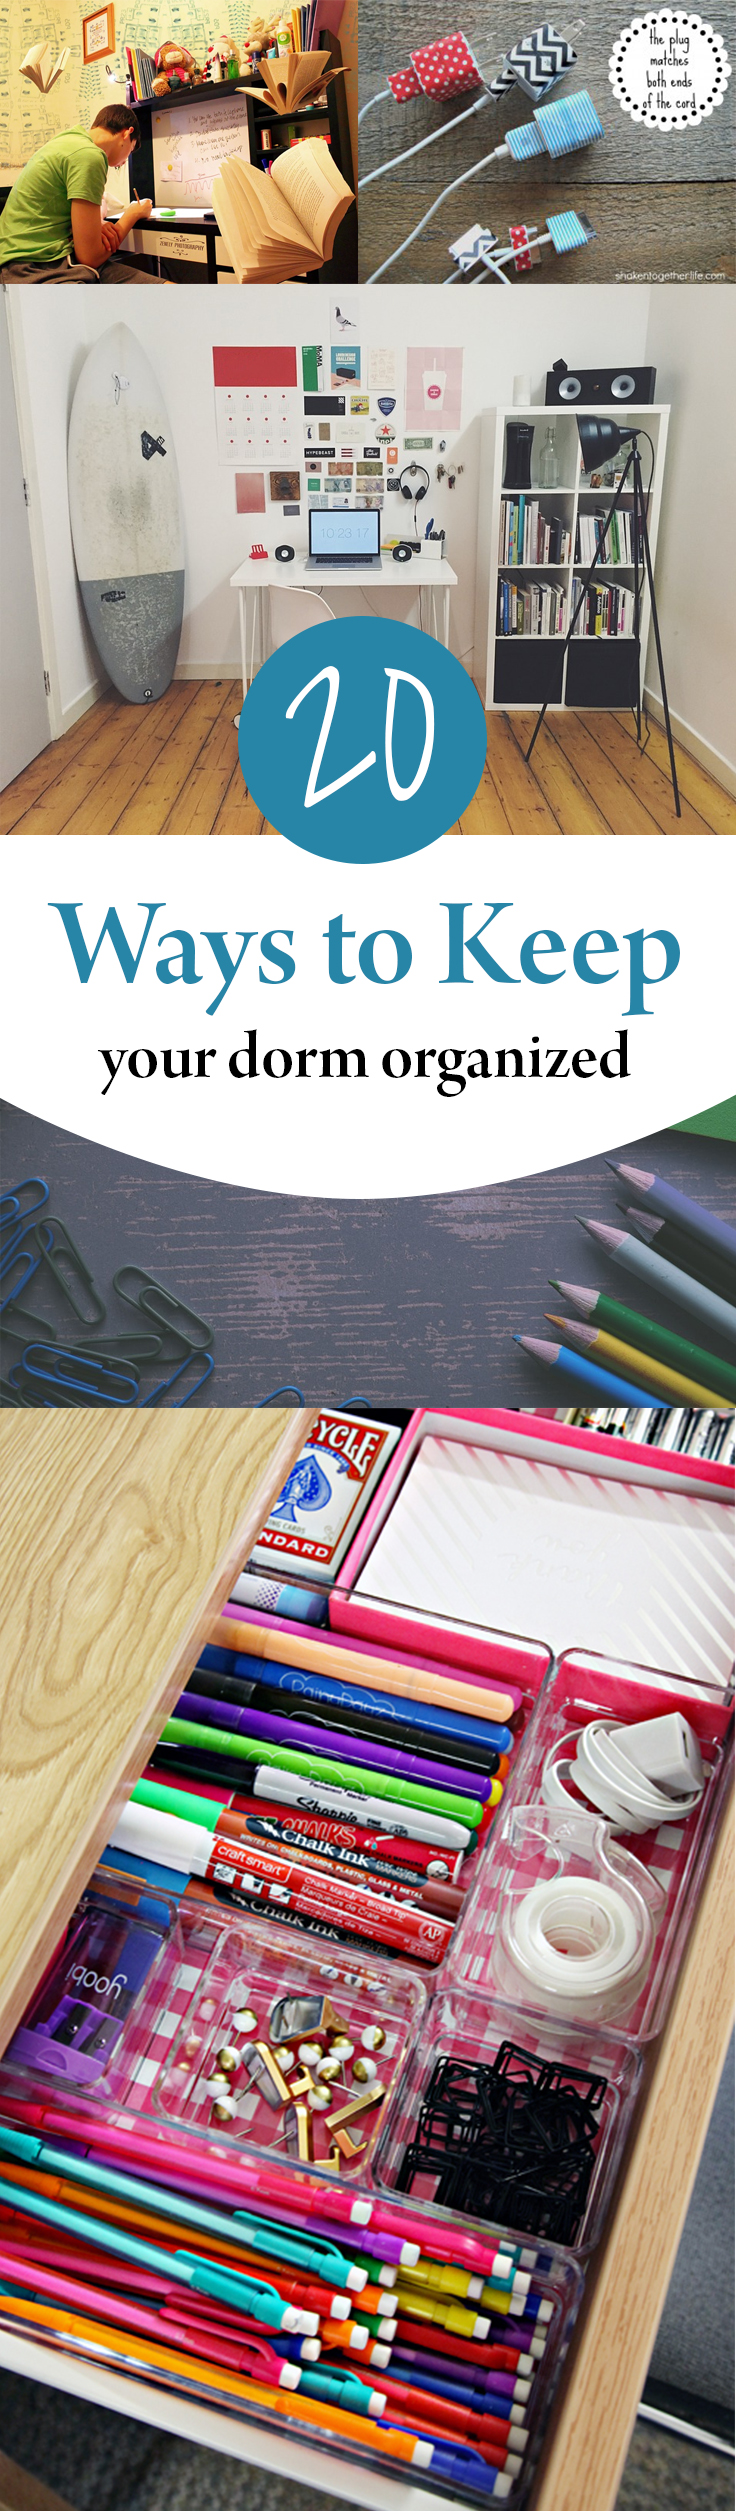 20-ways-to-keep-your-dorm-organized-1